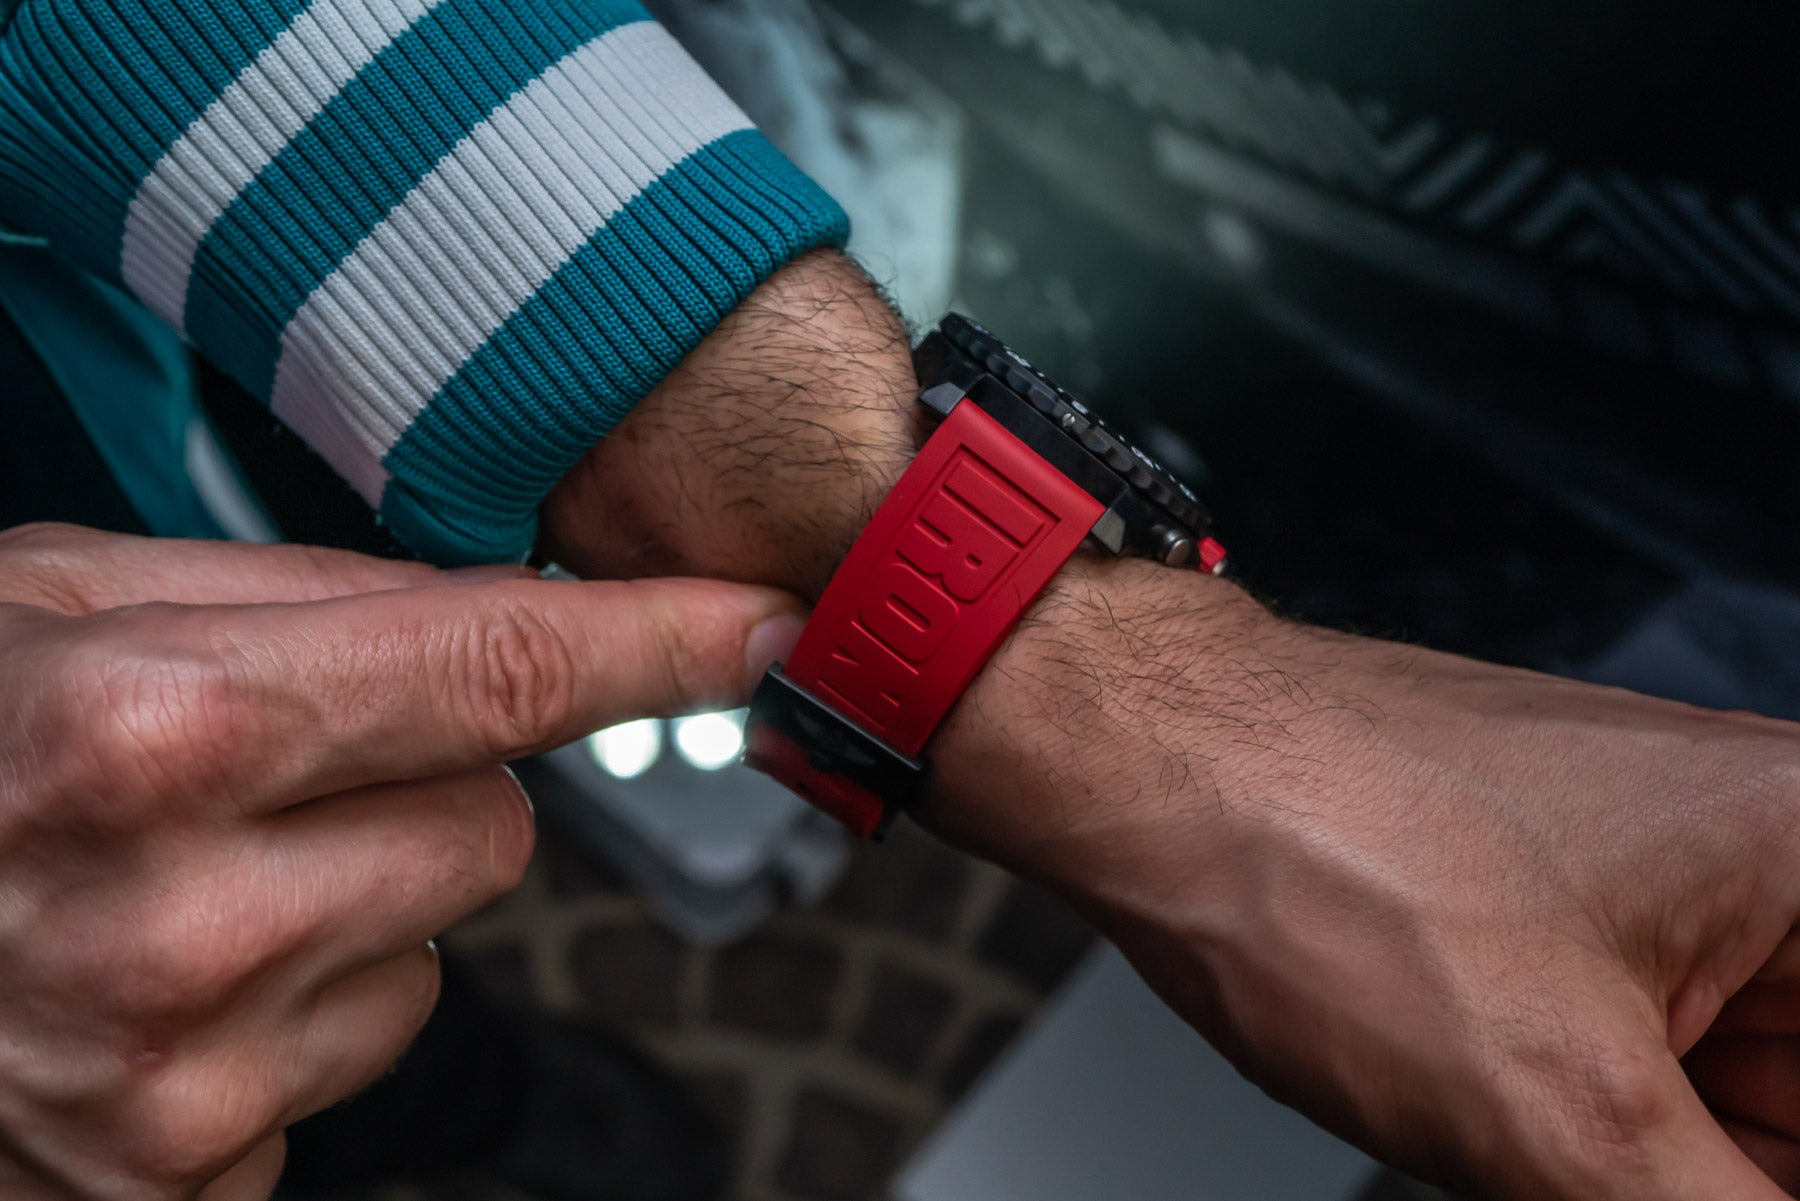 Discover Breinling watches on BitDials